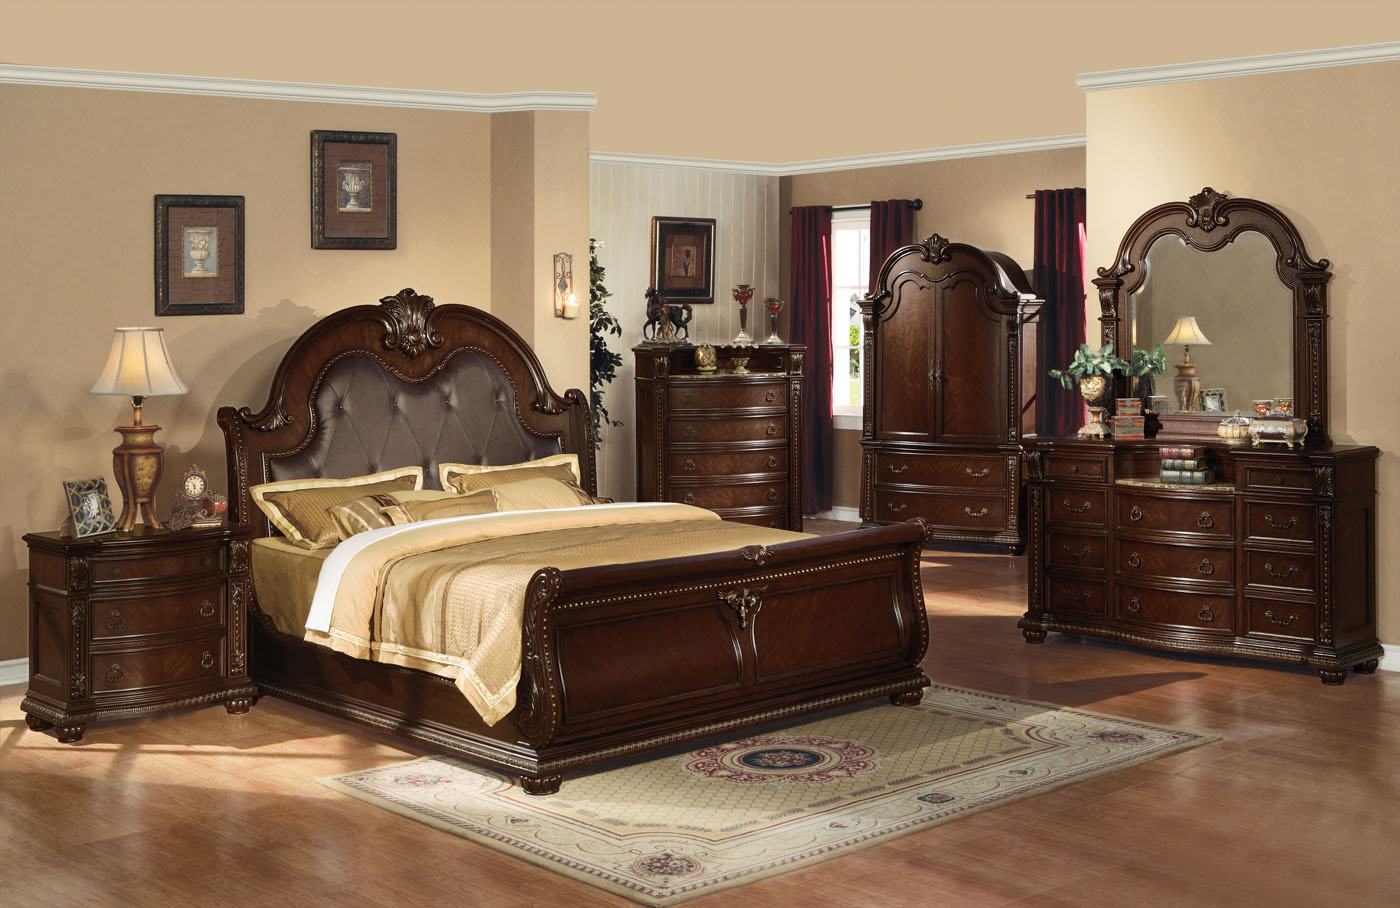 bedroom furniture sets with bed photo - 4